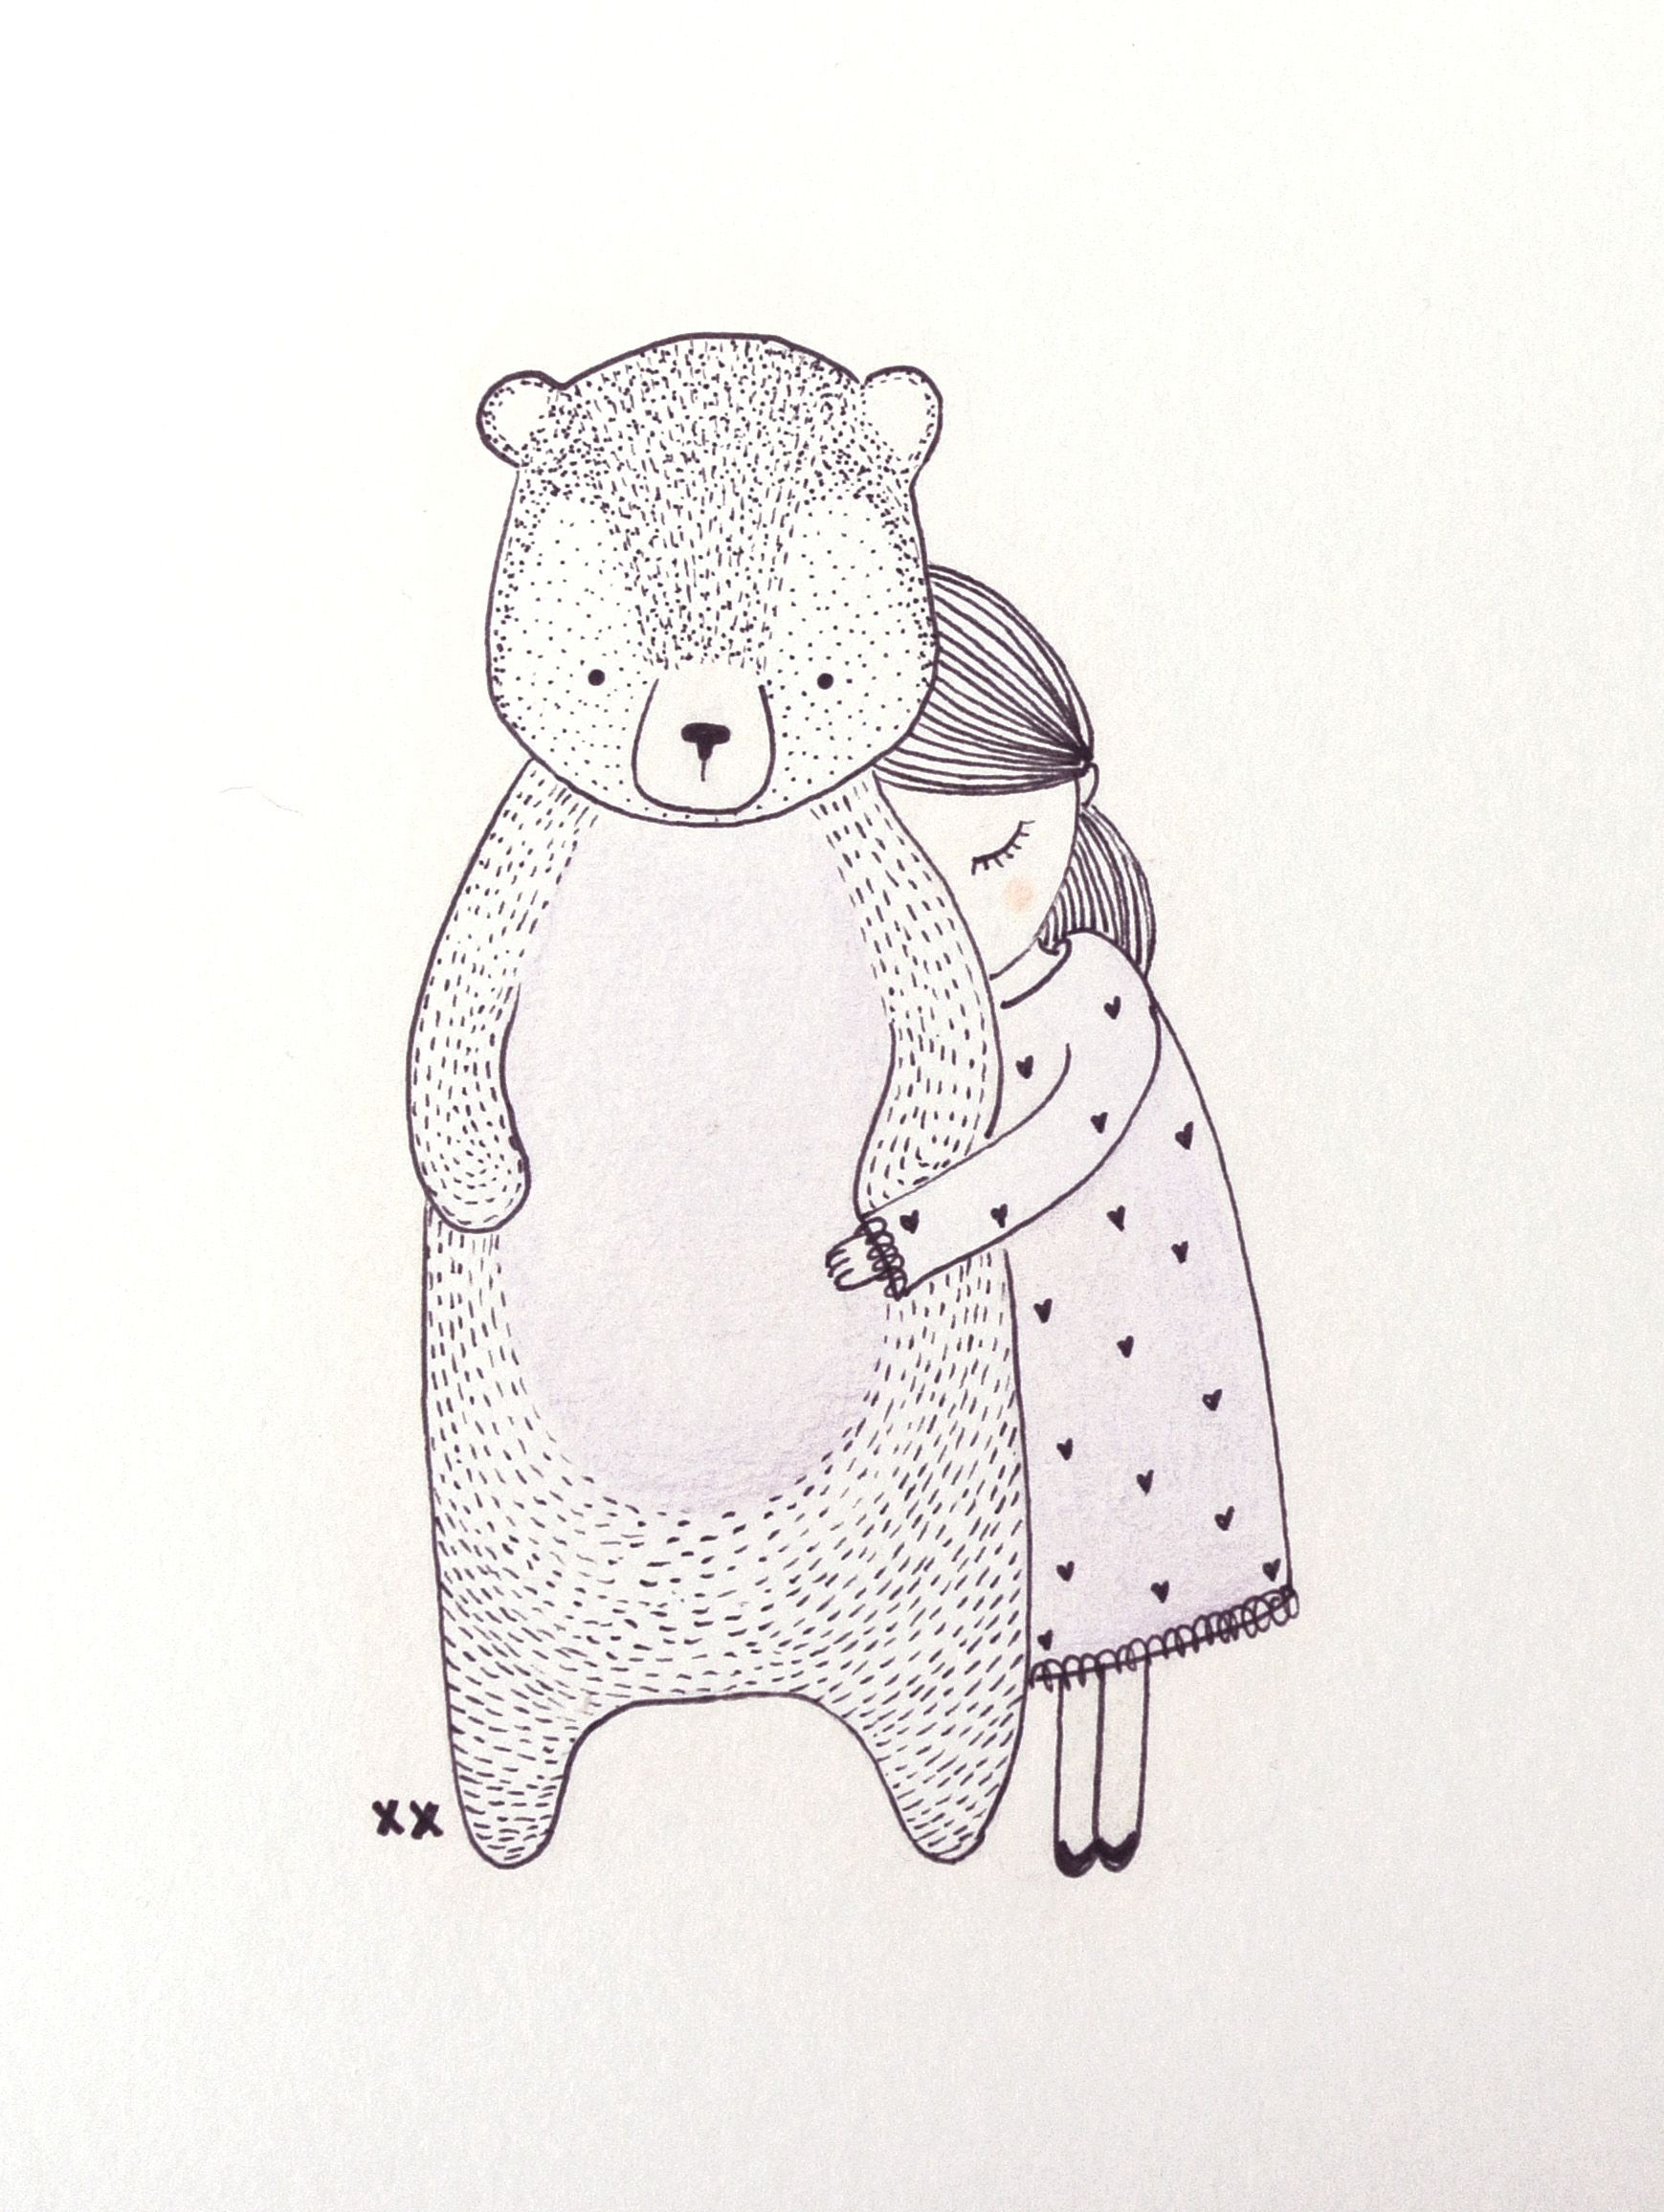 illustratie beer | illustration bear | www ...Little Girl With Teddy Bear Black And White